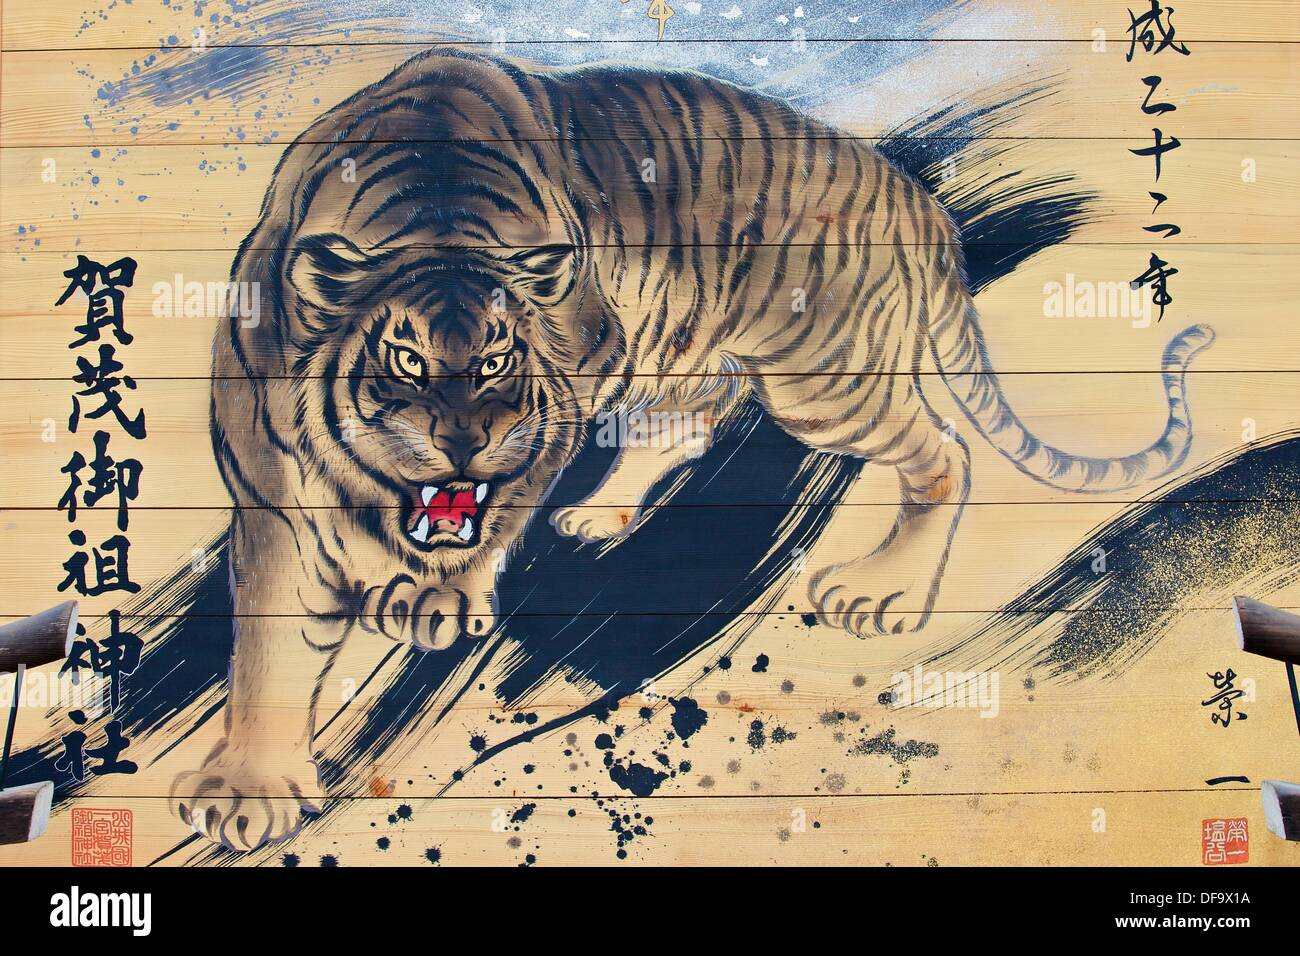 A painting of a tiger for the year of the tiger on a wooden panel in a temple - Stock Image